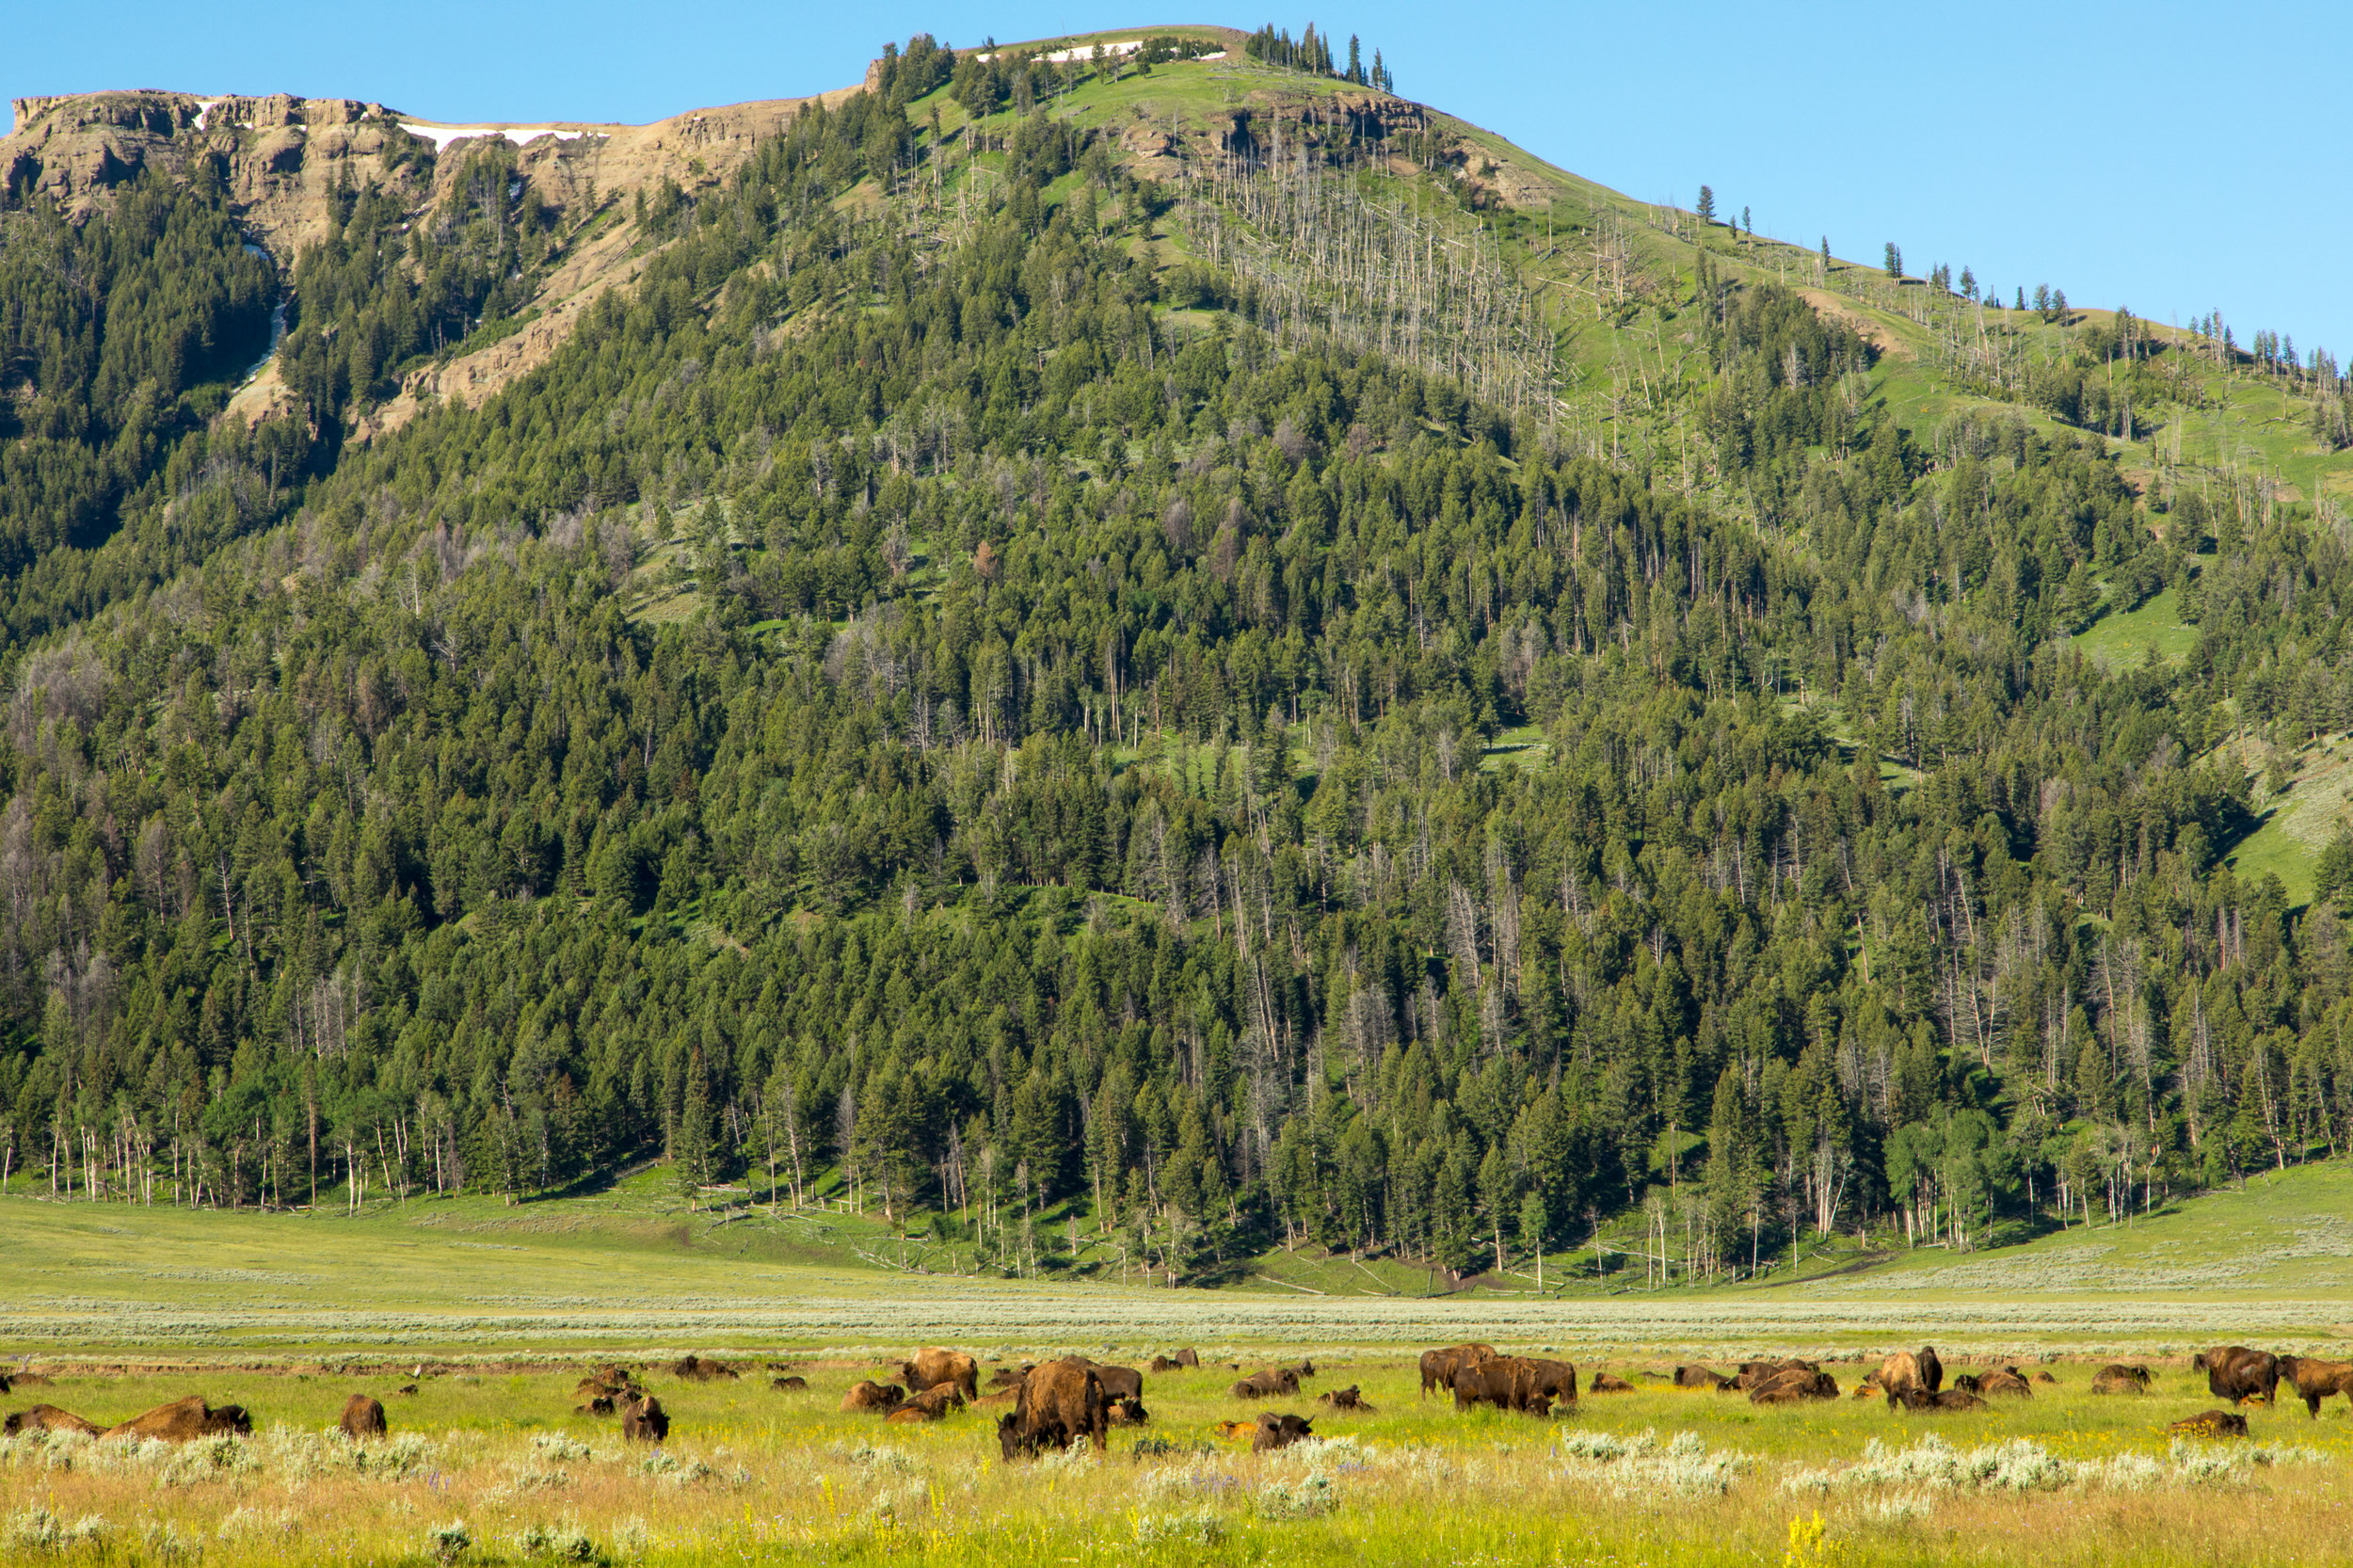 Lamar Valley, Yellowstone National Park, Image # 7620